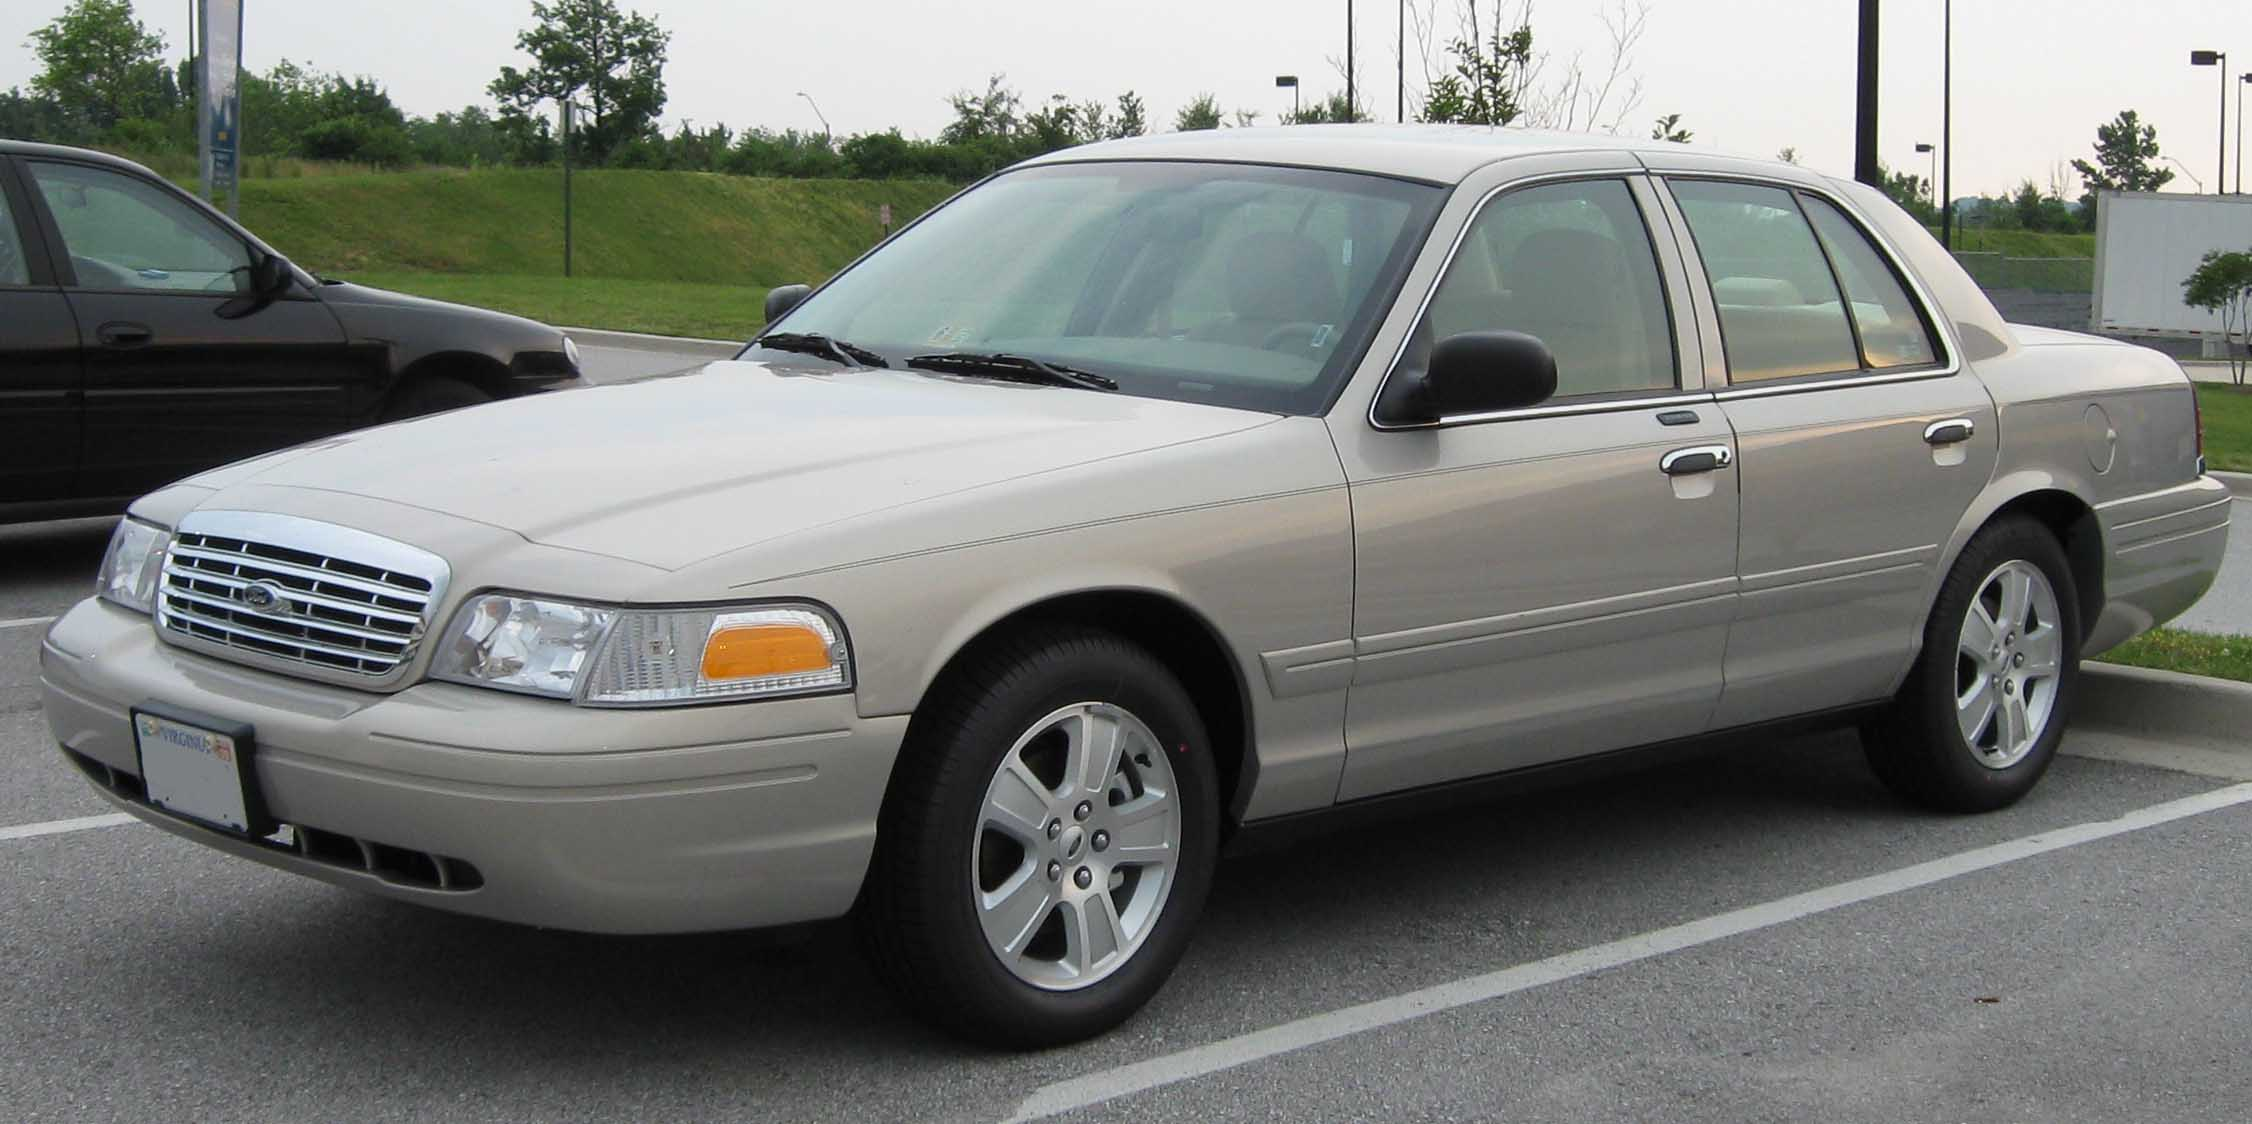 2008 ford crown victoria 7 ford crown victoria 7